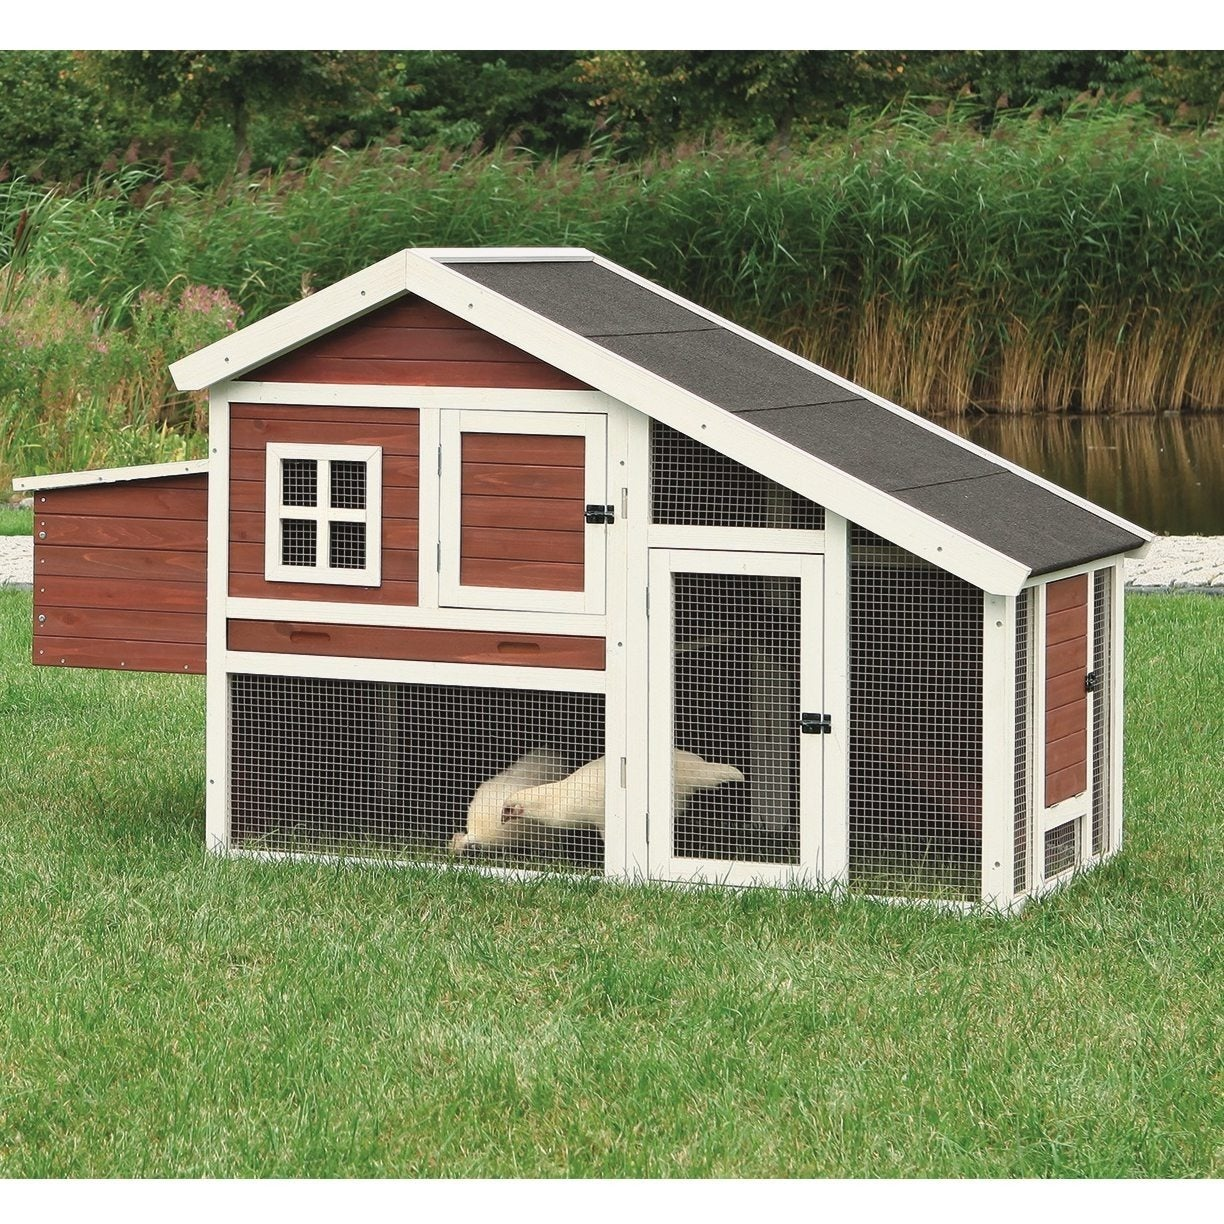 Shop TRIXIE Chicken Coop with a View - Overstock - 6689406